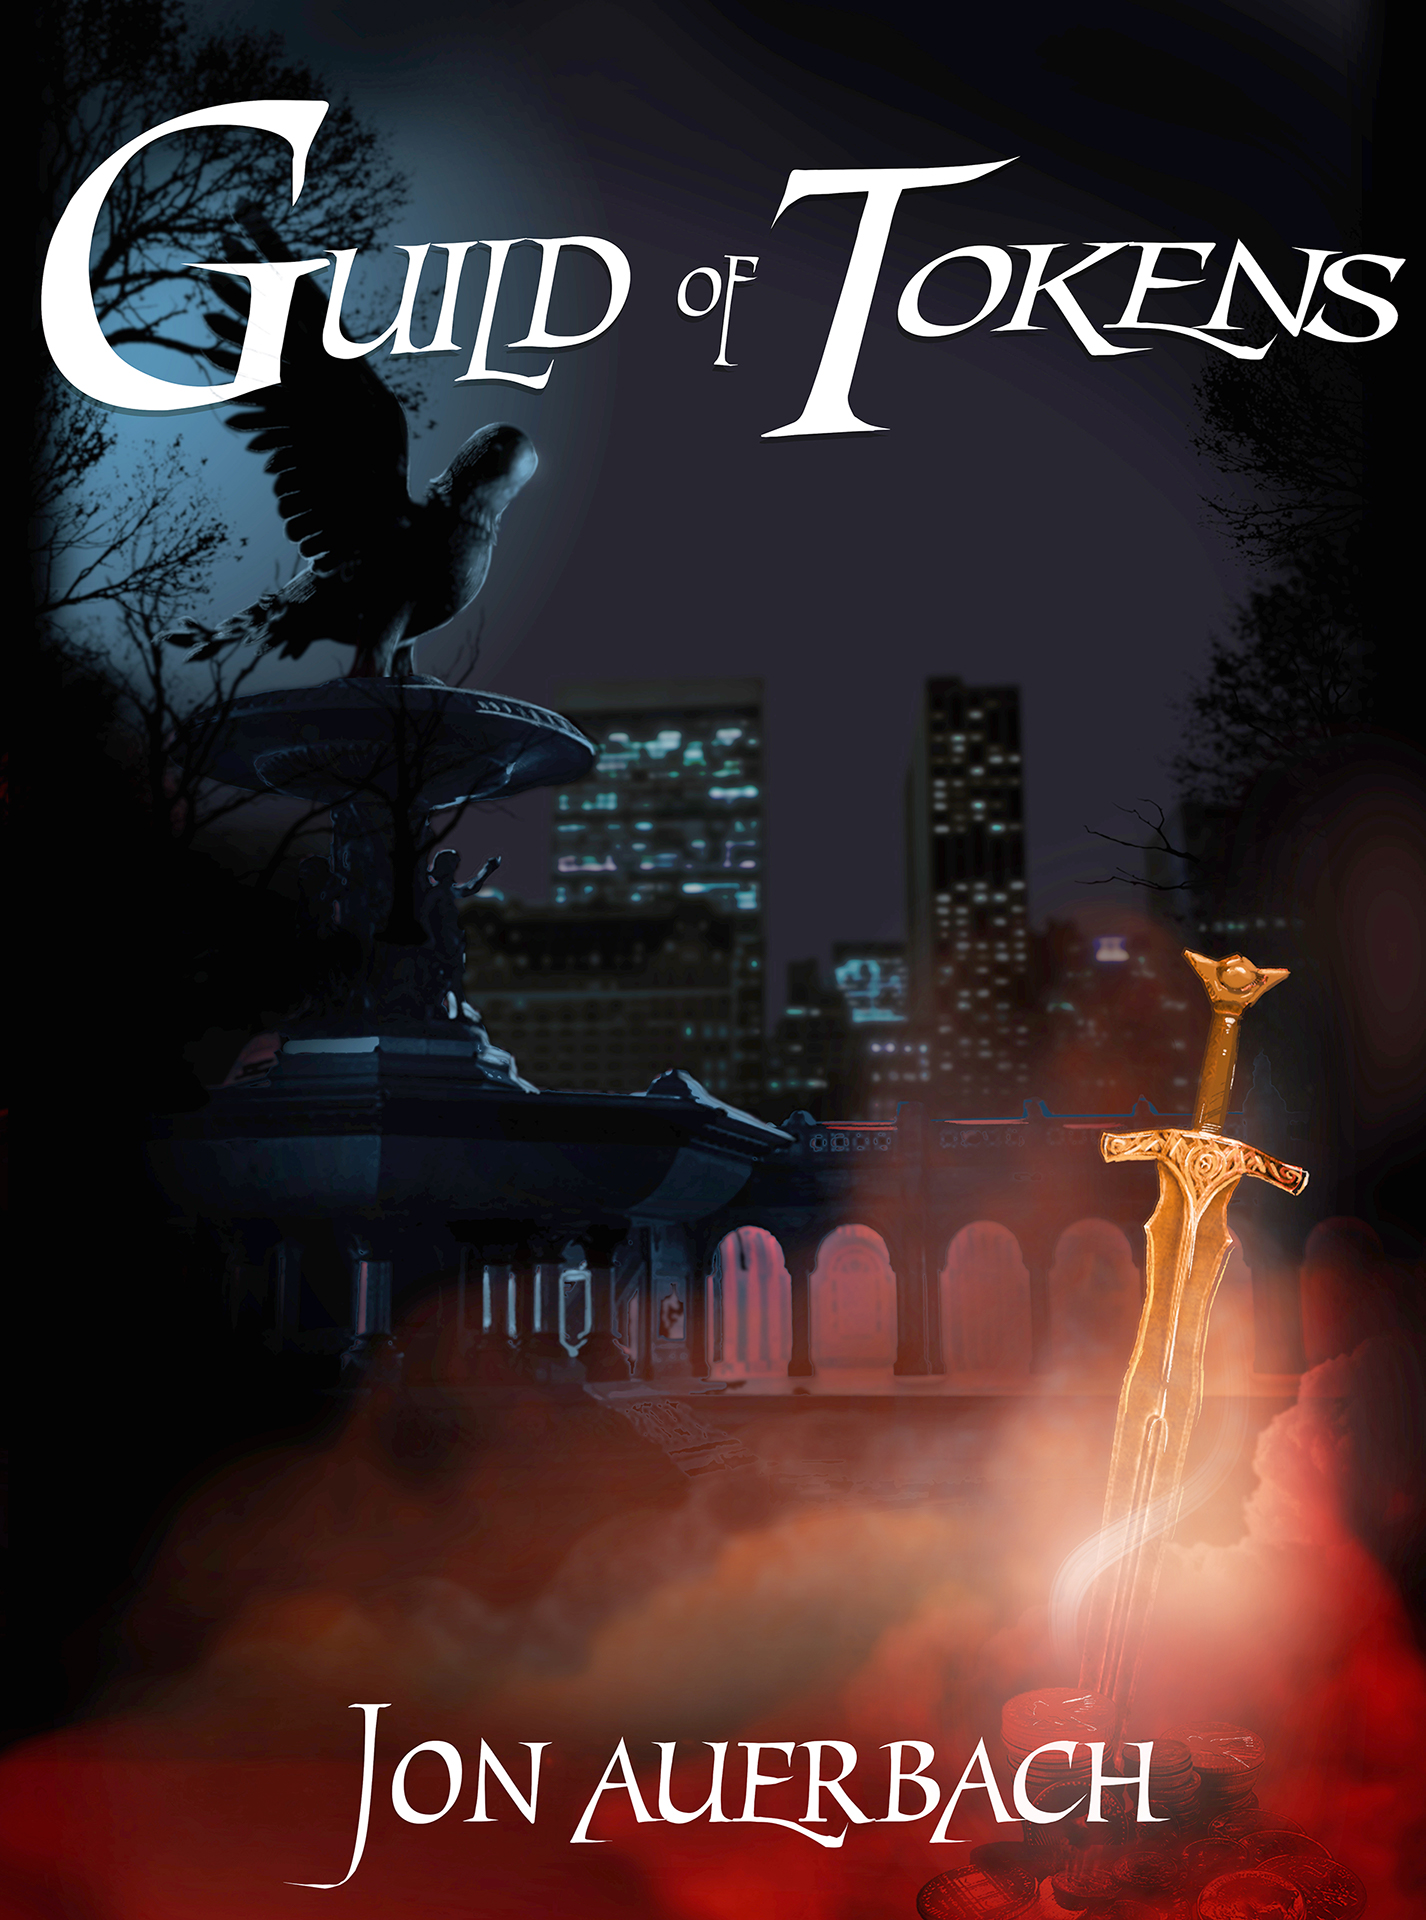 Guild-of-Tokens-cover-2